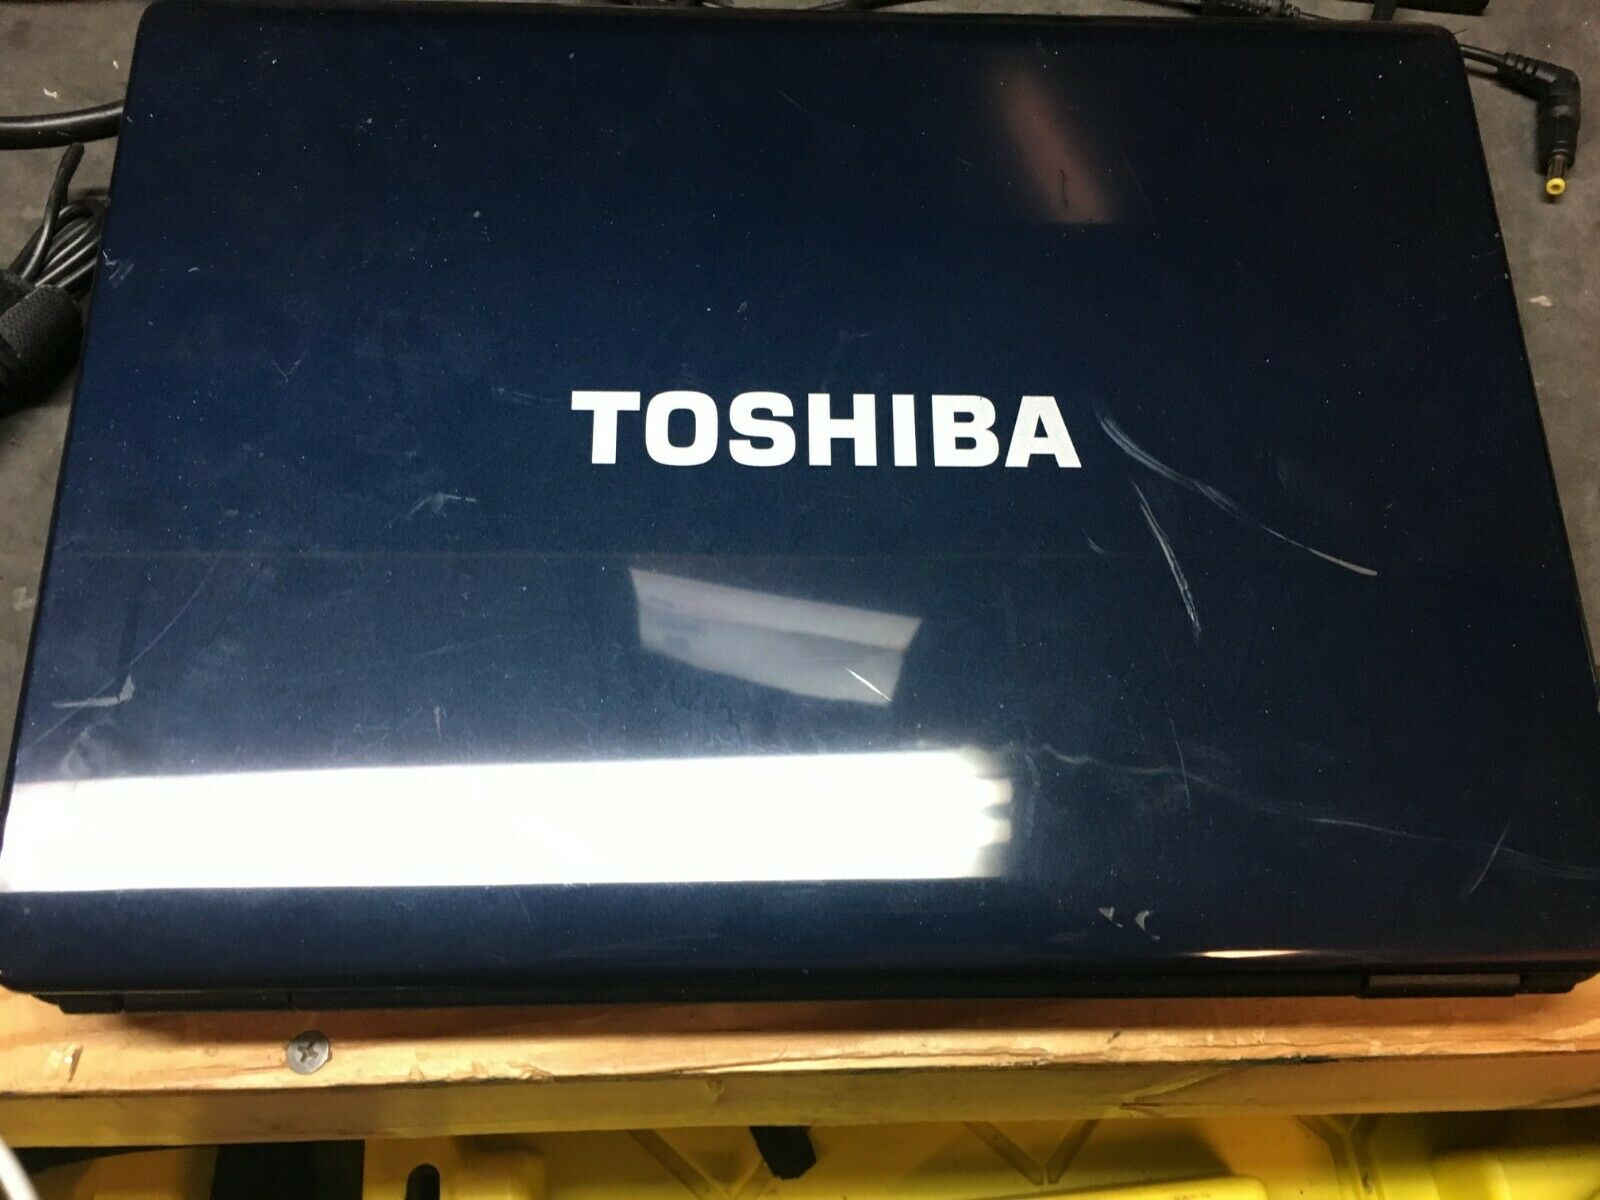 Toshiba Satellite L305D Laptop_AMD Turion 64 X2 TL-60 @ 2.00 GHz_4GB RAM *NO HD*